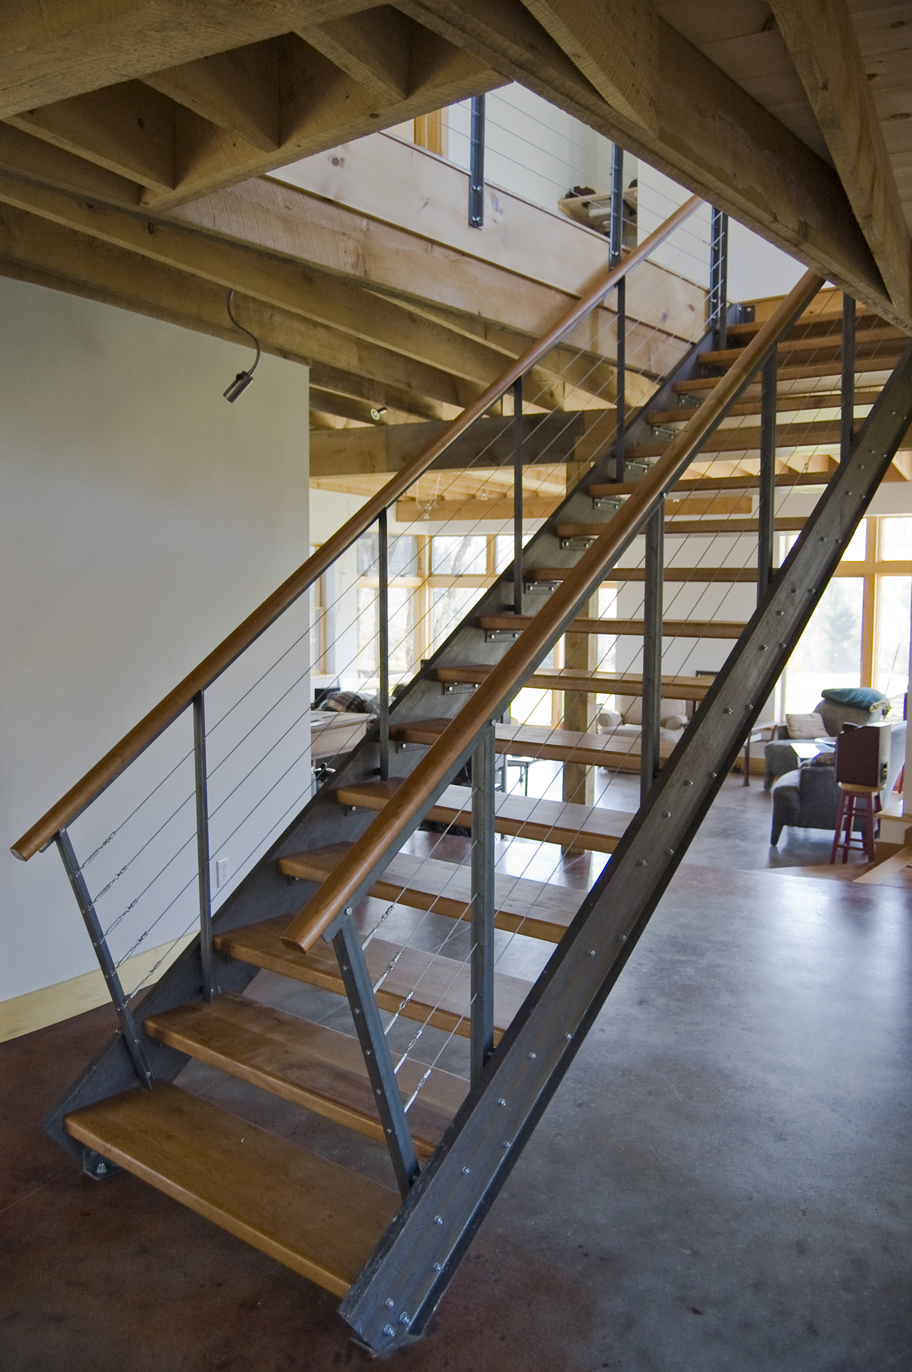 higley_stair-small.jpg